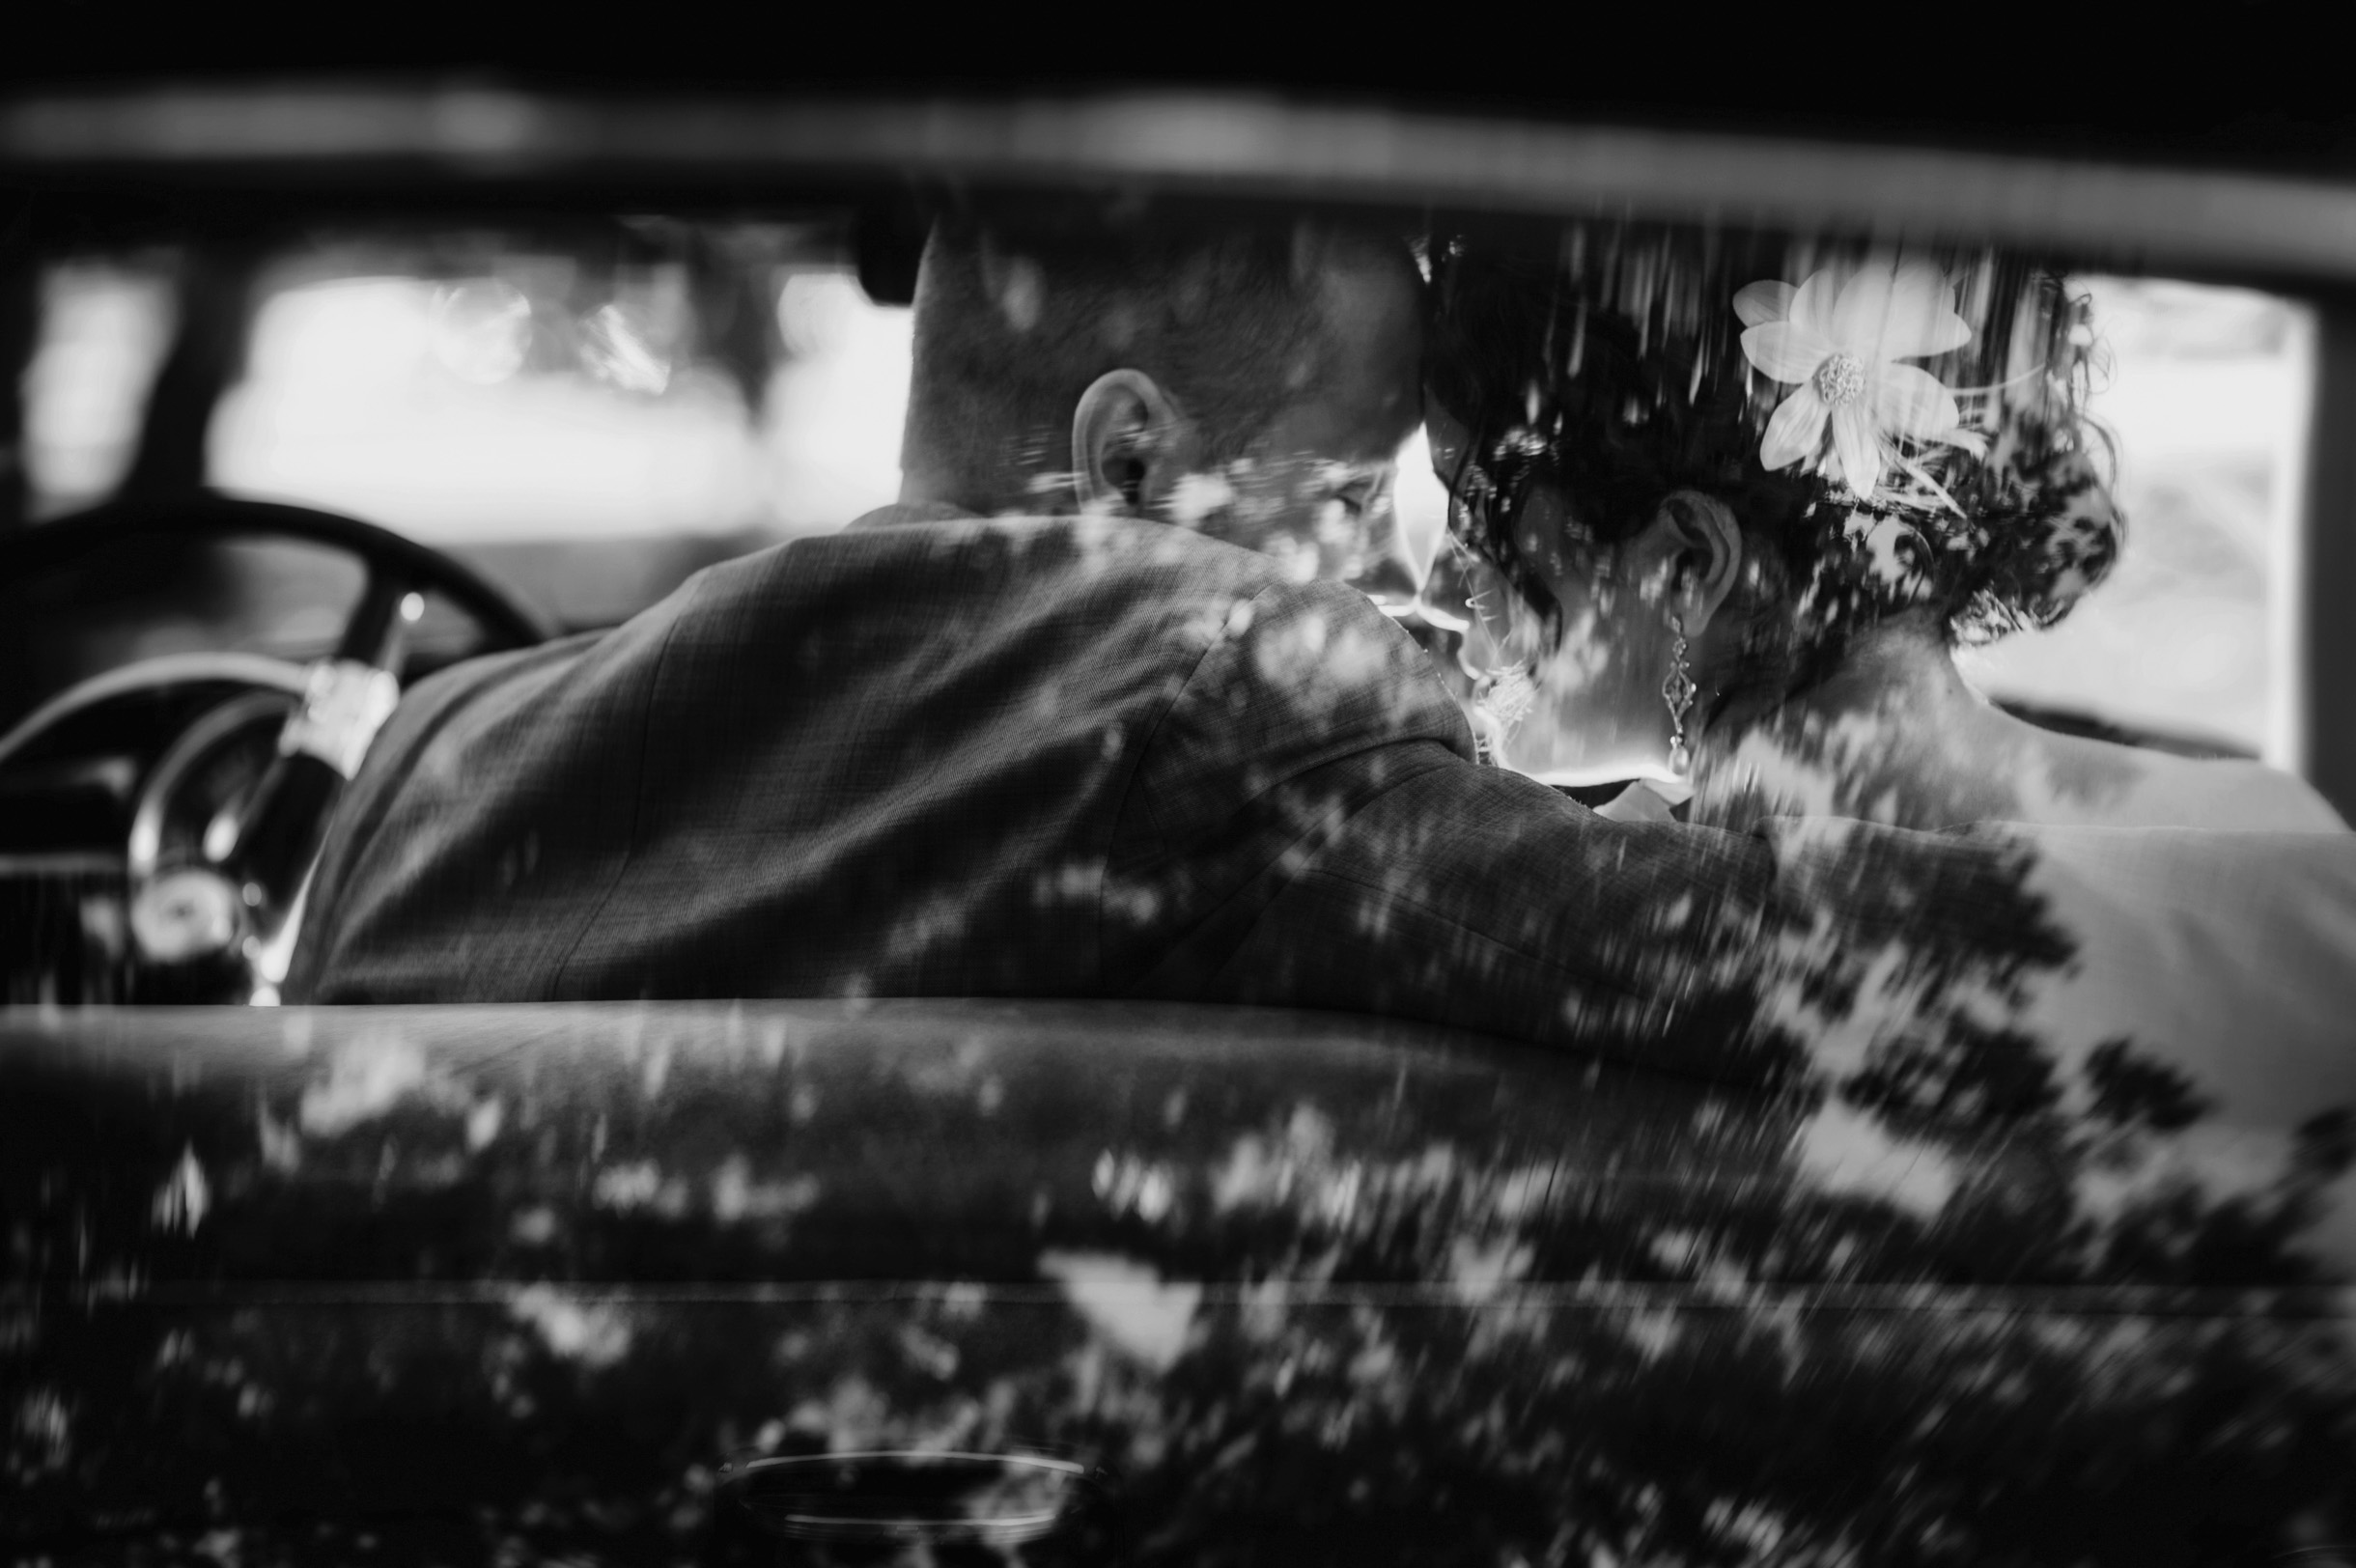 Bride and Groom romantically kissing in a classic car Photograph in Black and White-019